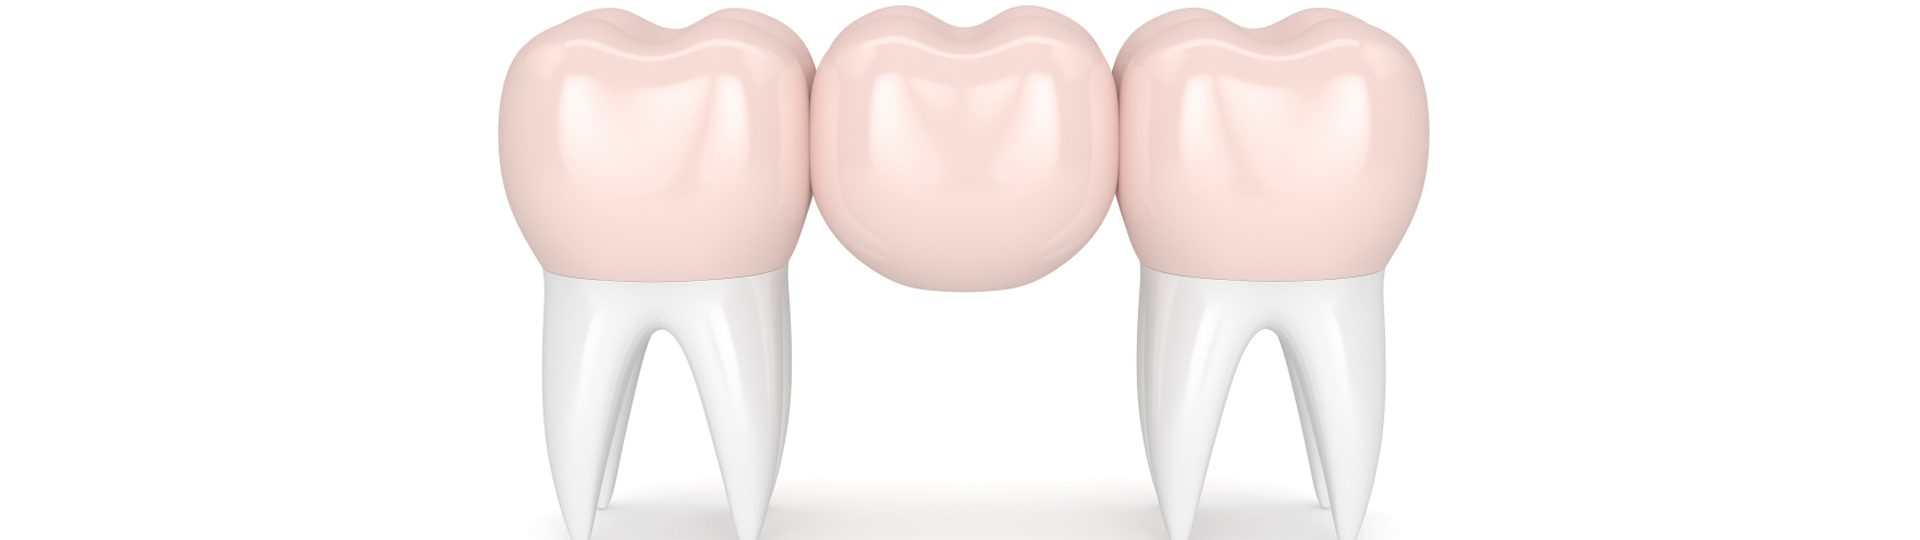 Dental Bridge – Types, Costs, Problems & Difference To Implants